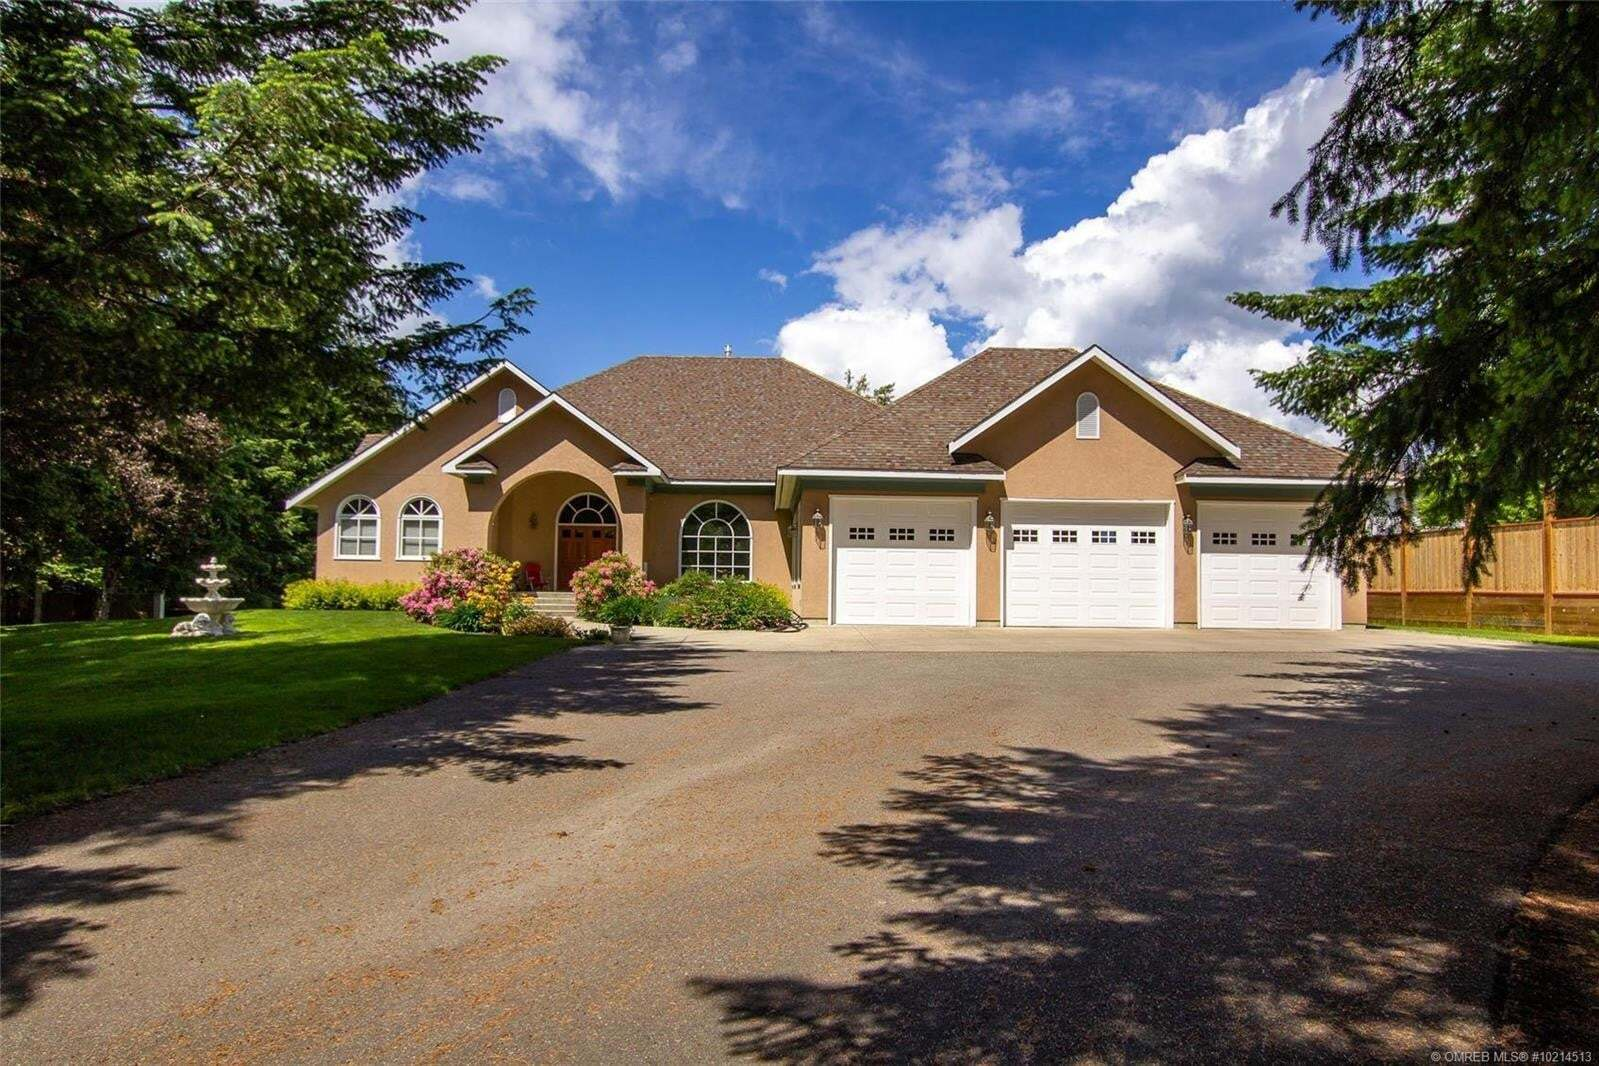 Home for sale at 2281 Auto Rd Southeast Salmon Arm British Columbia - MLS: 10214513